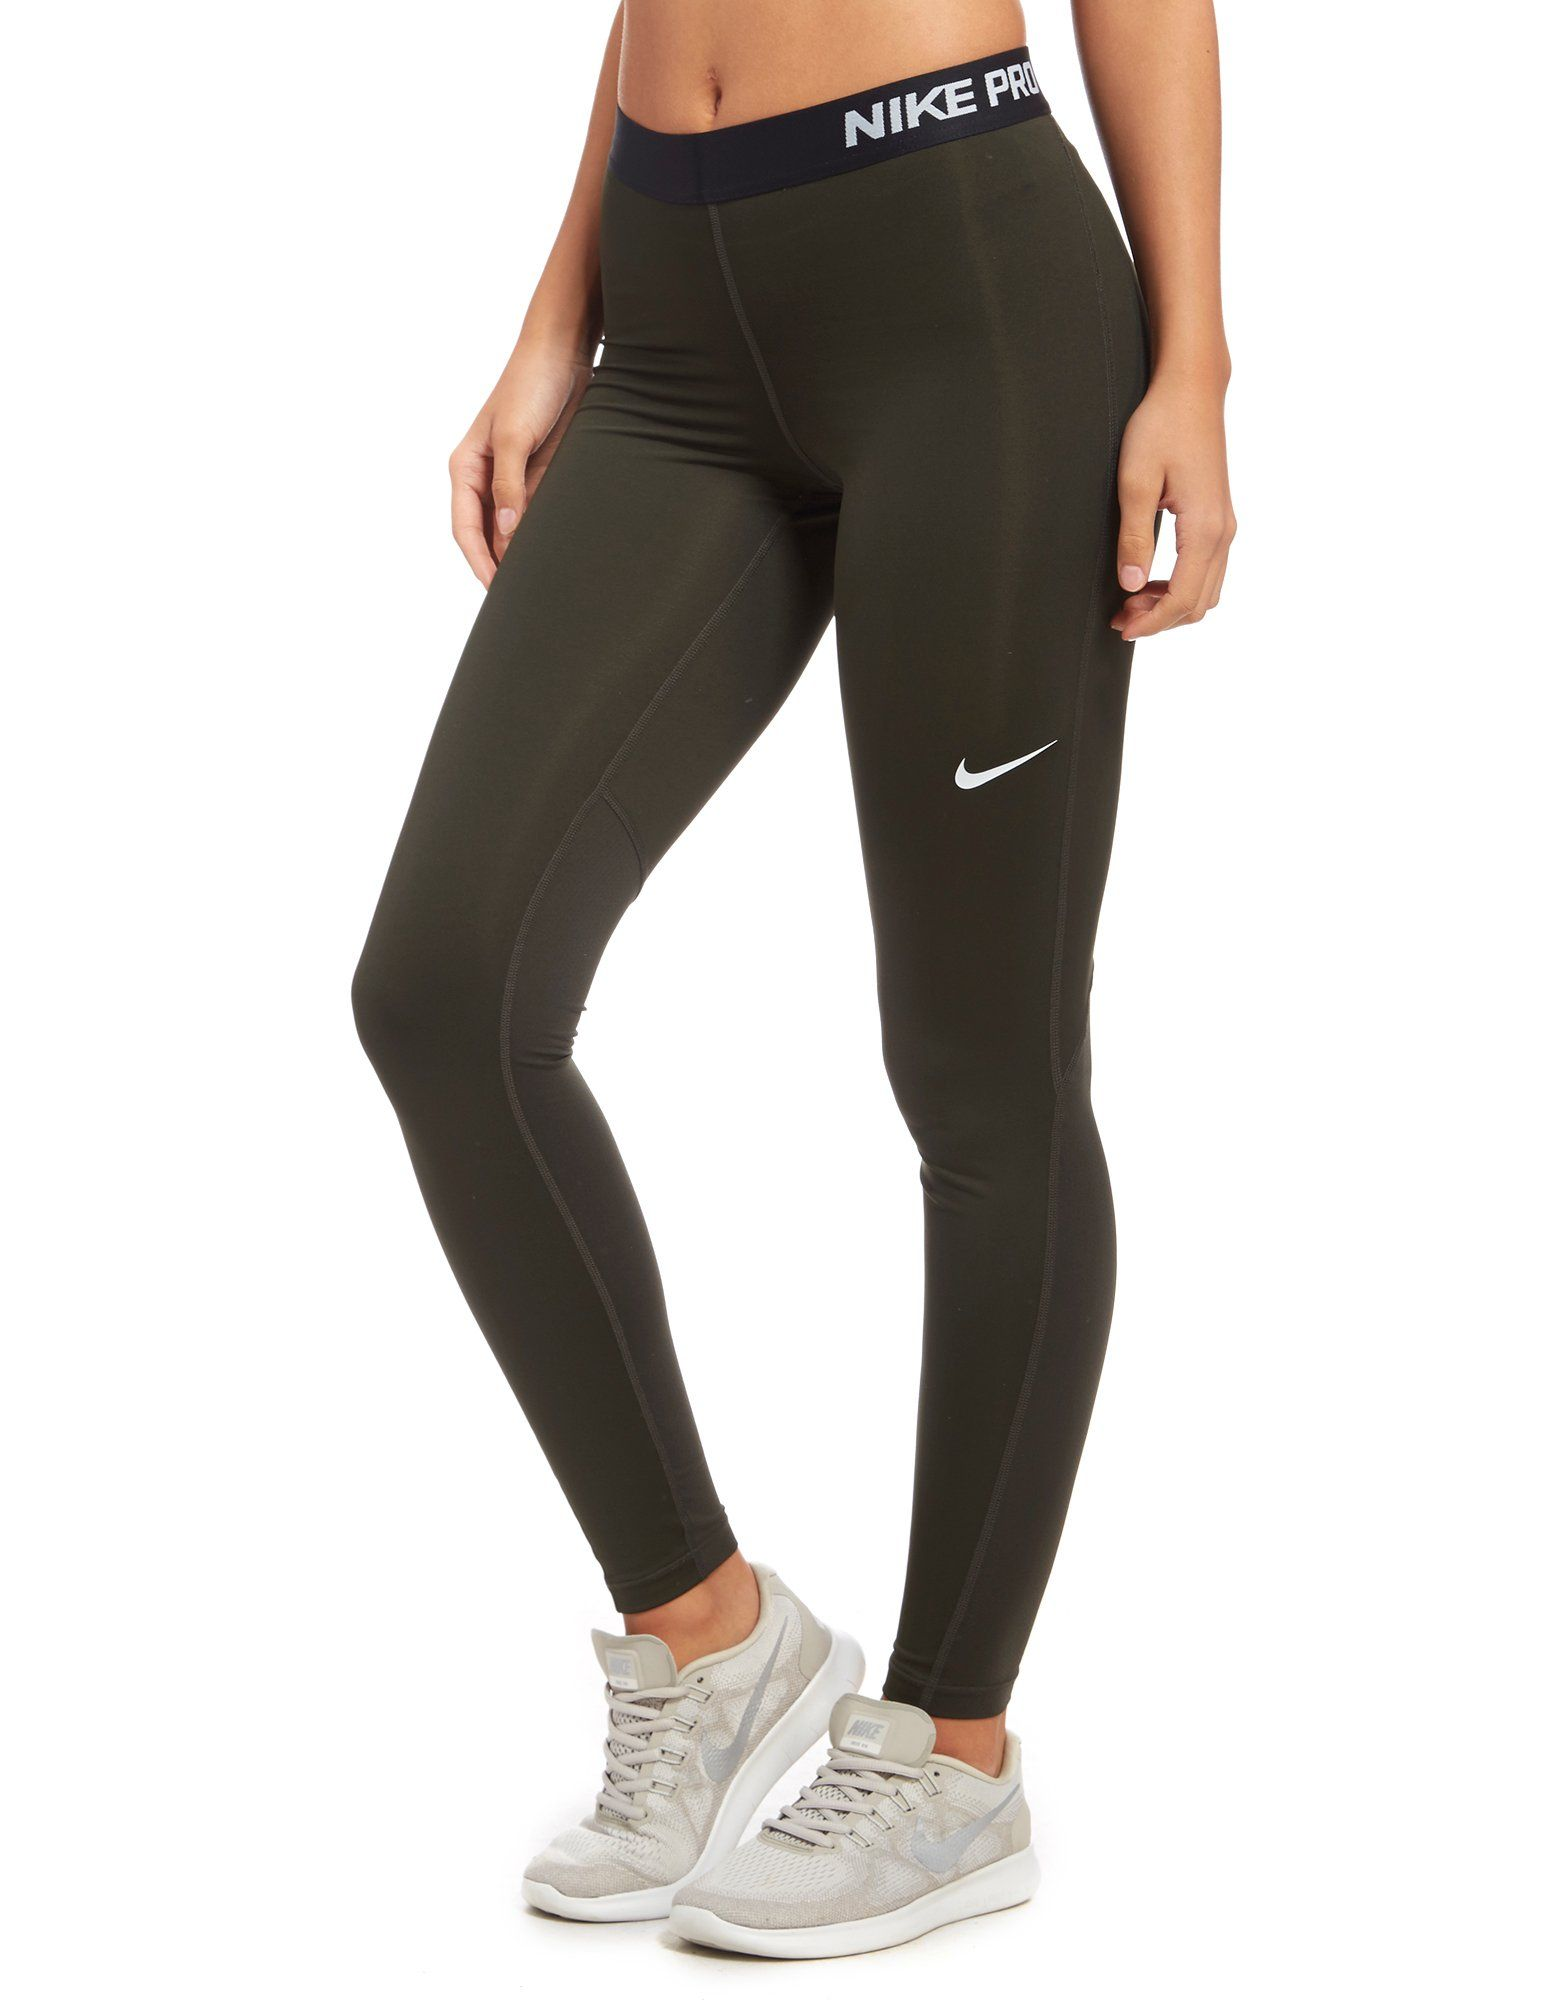 nike pro leggings nike pro core ii women 39 s tights. Black Bedroom Furniture Sets. Home Design Ideas